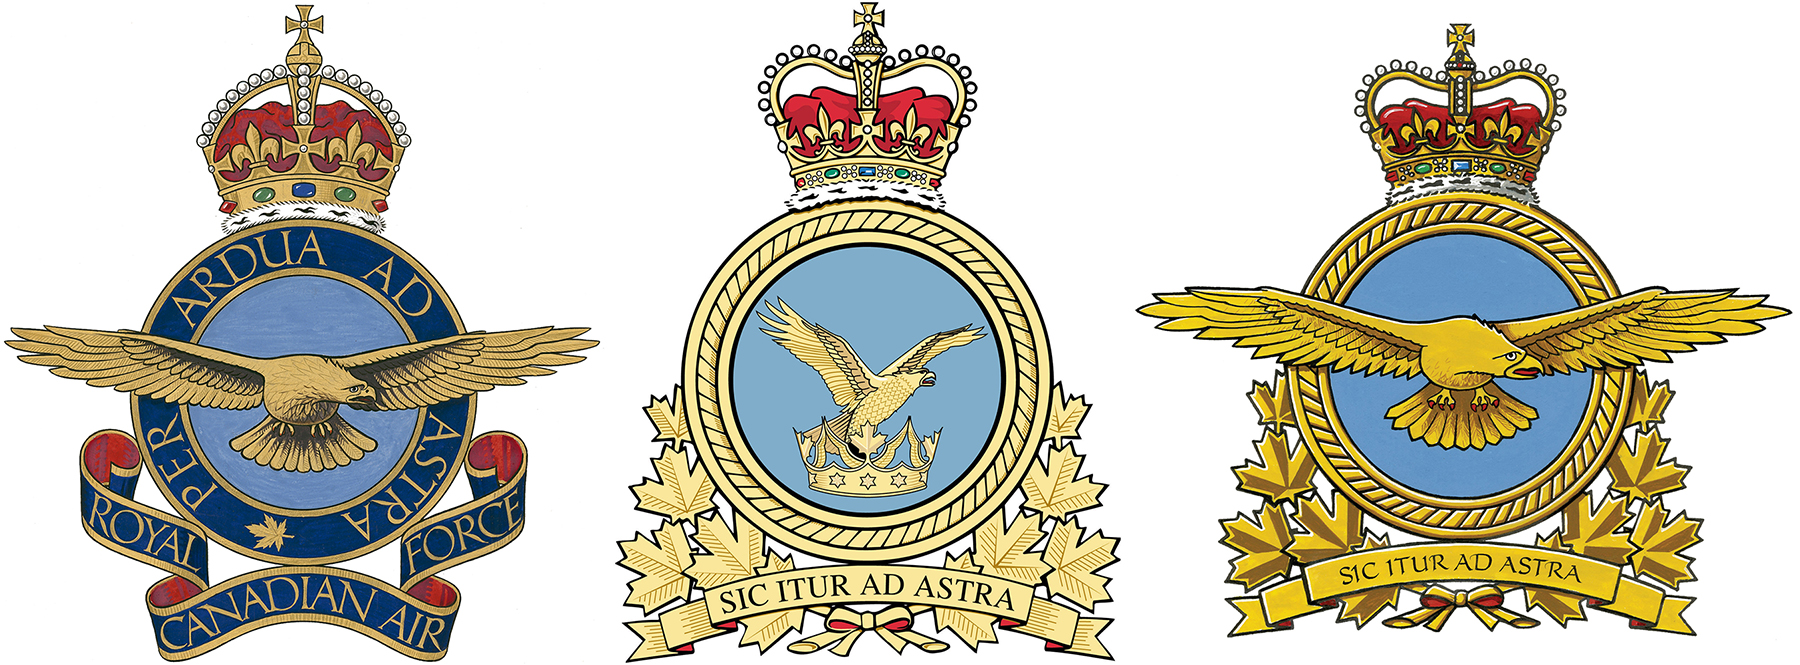 A single image of portions of three air force badges, all portraying an eagle at their centre.